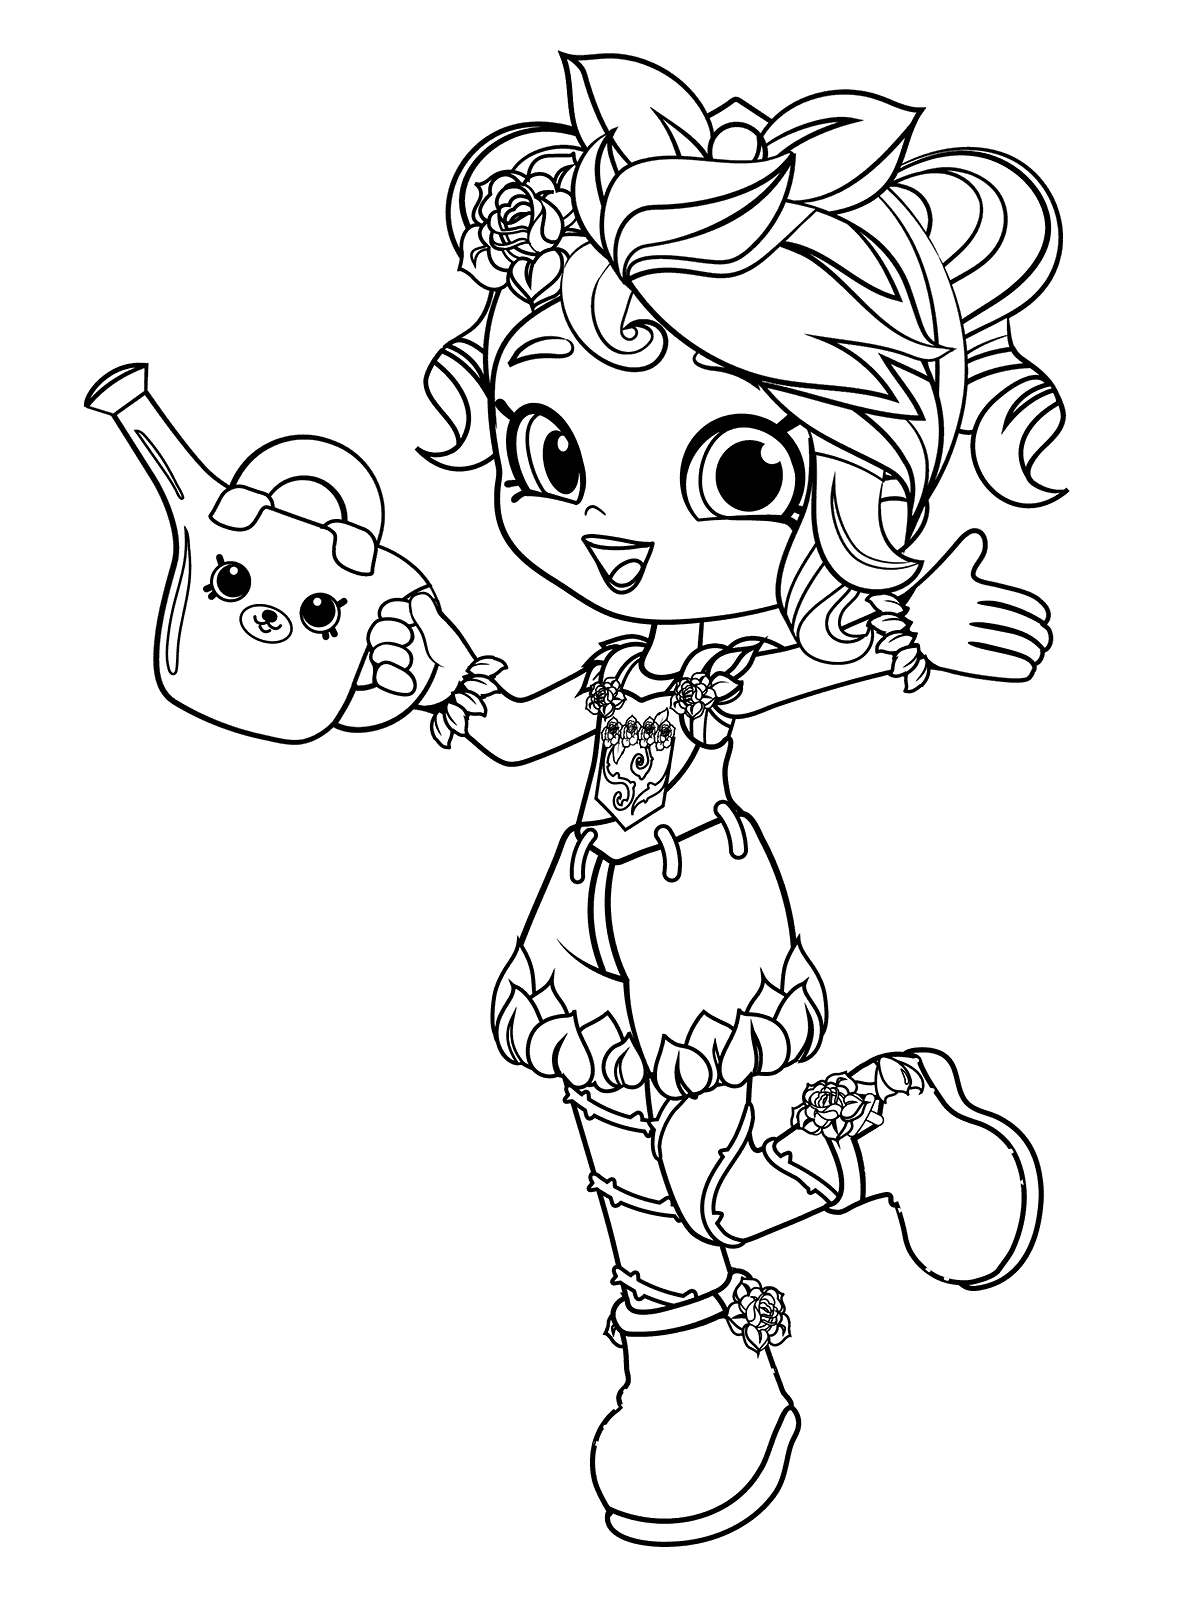 Rosie Bloom Shoppies - Shopkins Coloring Pages